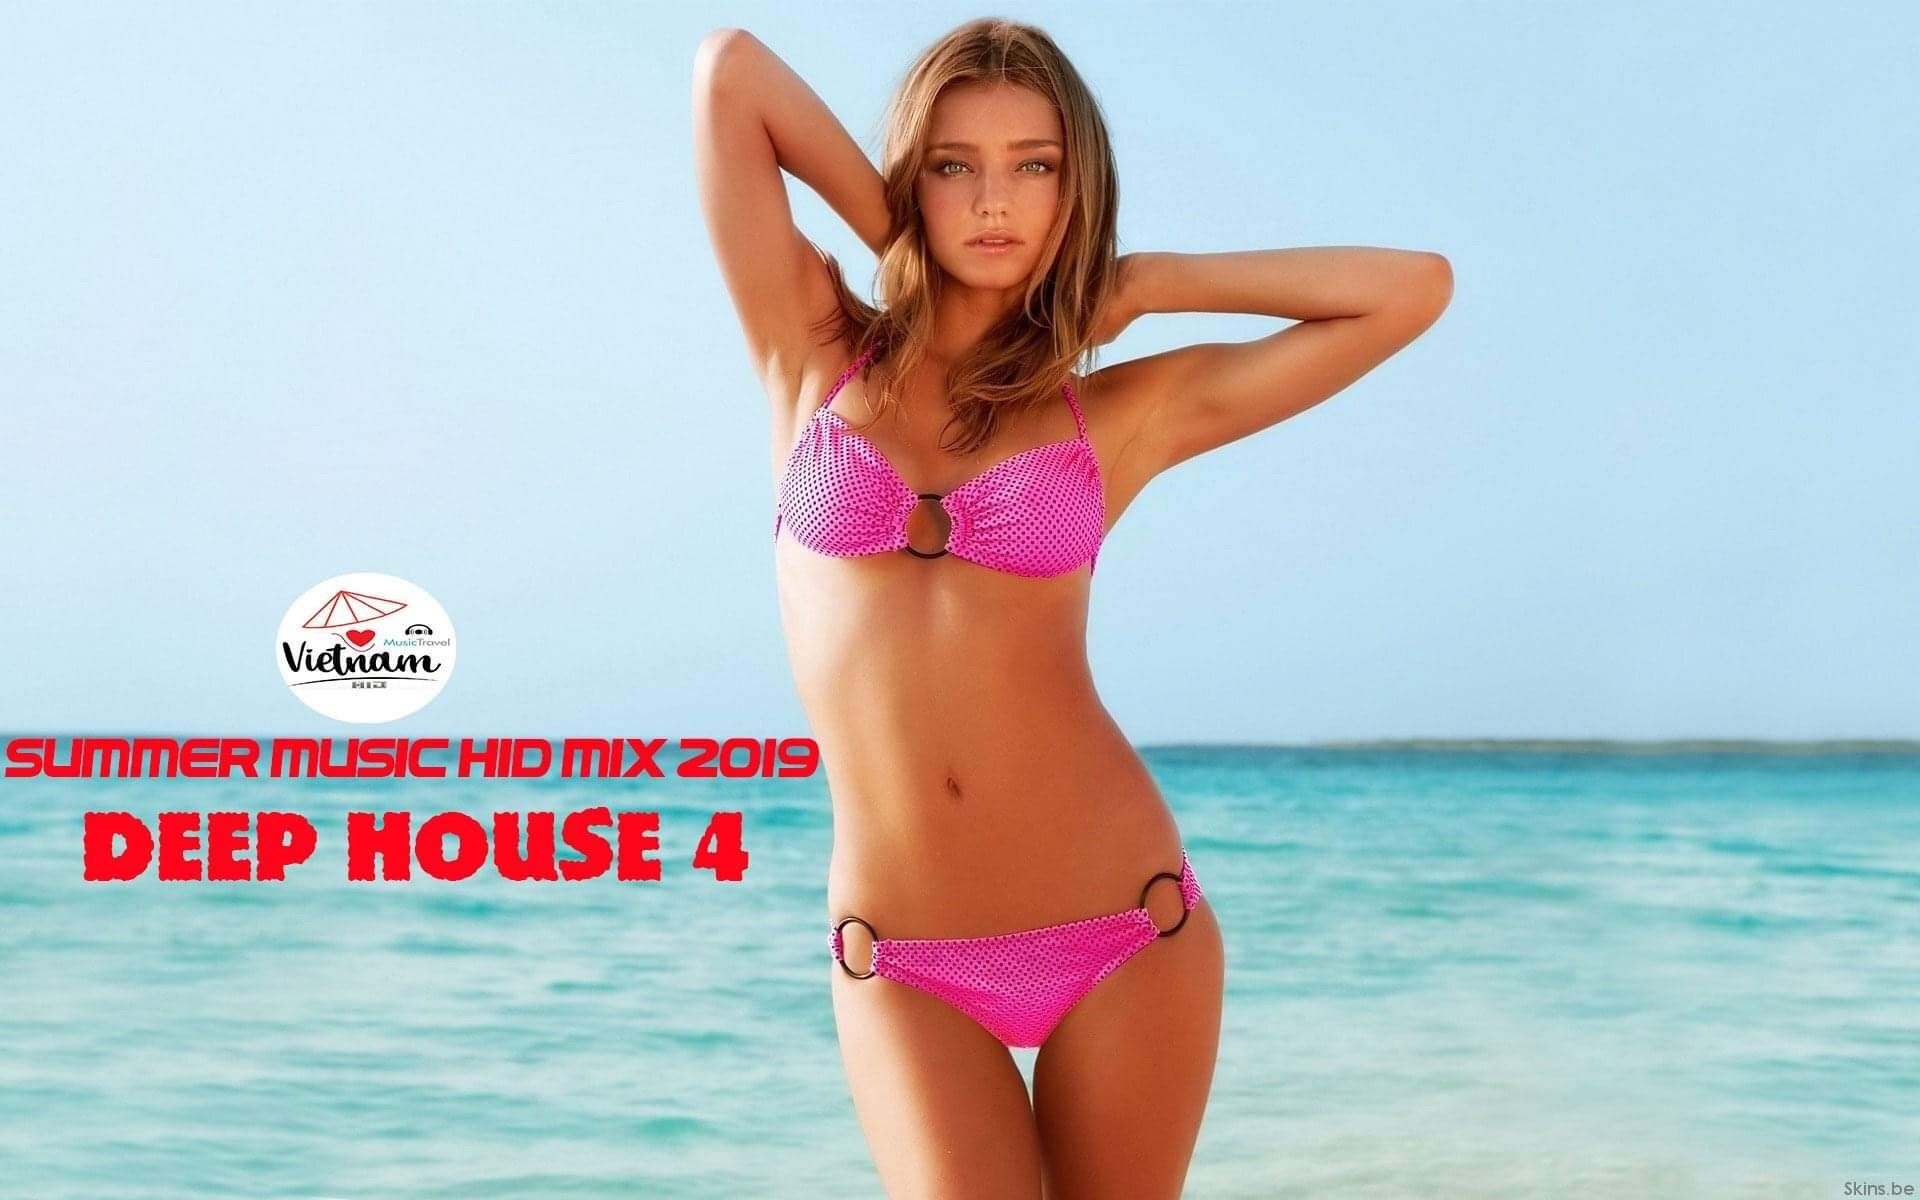 Summer Music HID Mix 2019 ' Best Of Tropical & Deep House Sessions Music Chill Out Mix By HID #4 ✔️ Follow Vietnam Musictravel ➤ YouTube →youtube.com/channel/UCMd2... ➤ Facebook →facebook.com/Vietnam-Musi... ➤ youtu.be/aT67Vb75TPQ